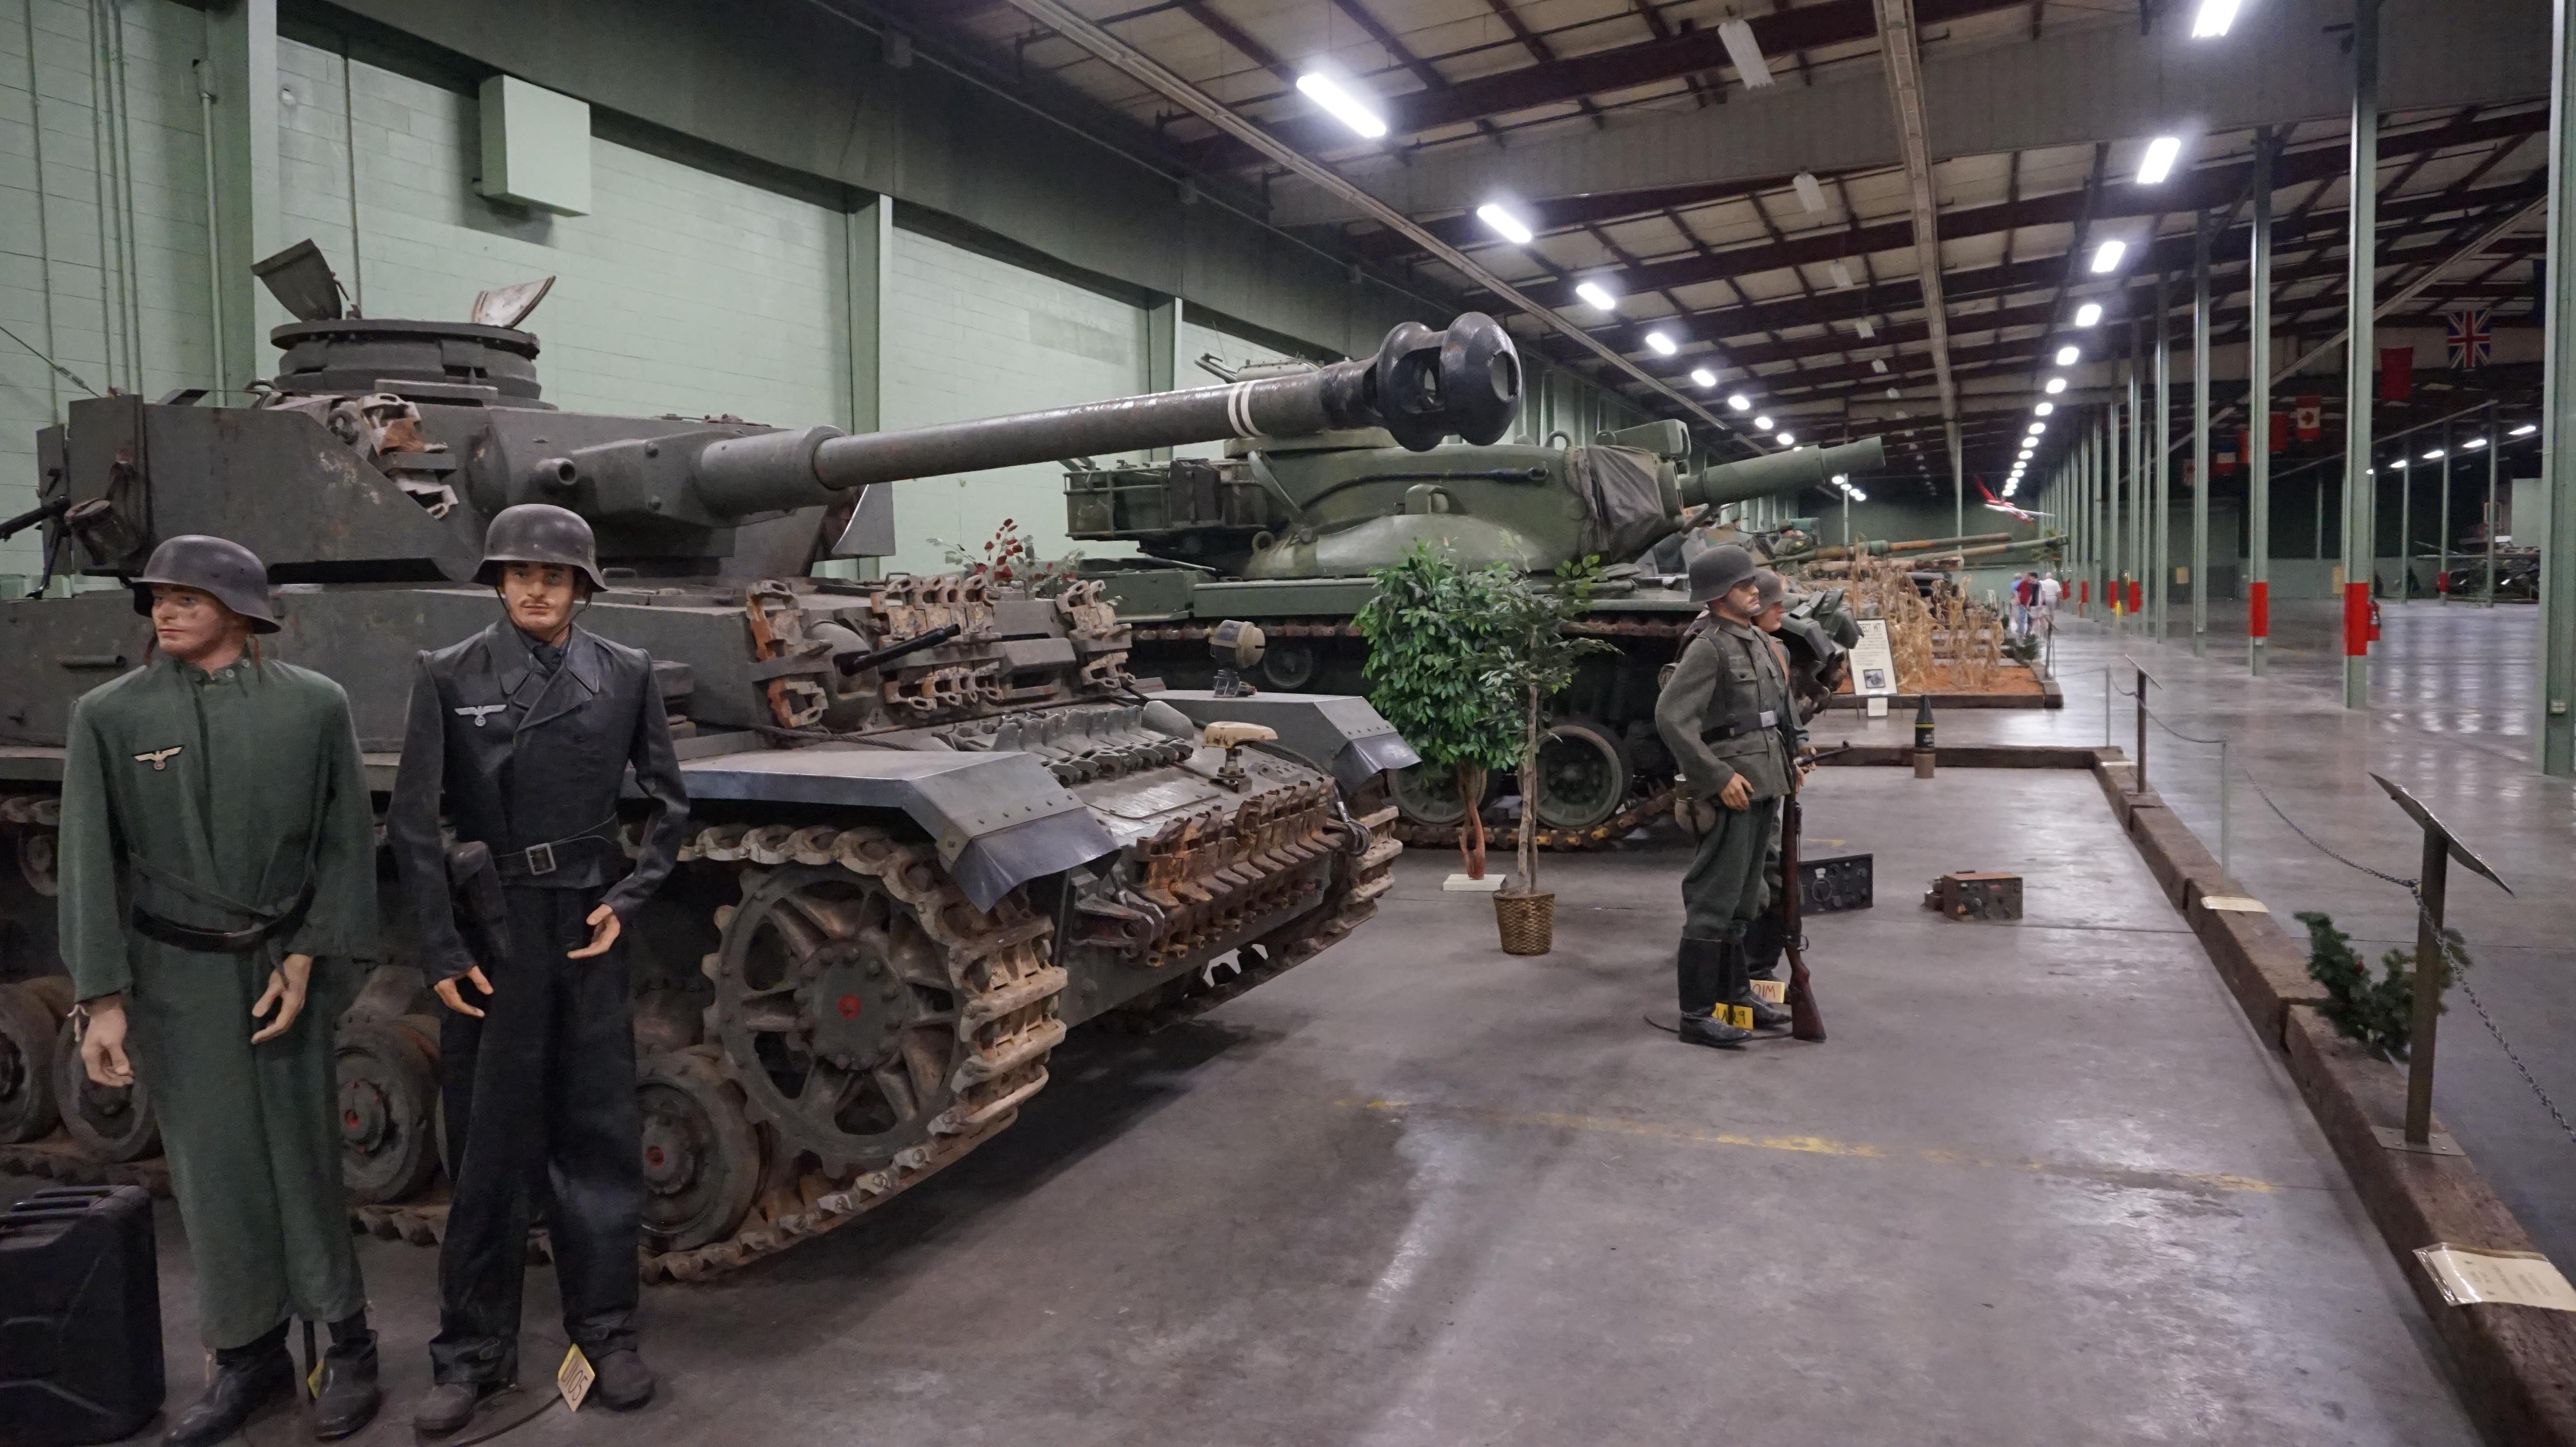 Tanks on display at the tank museum in Danville, Virginia